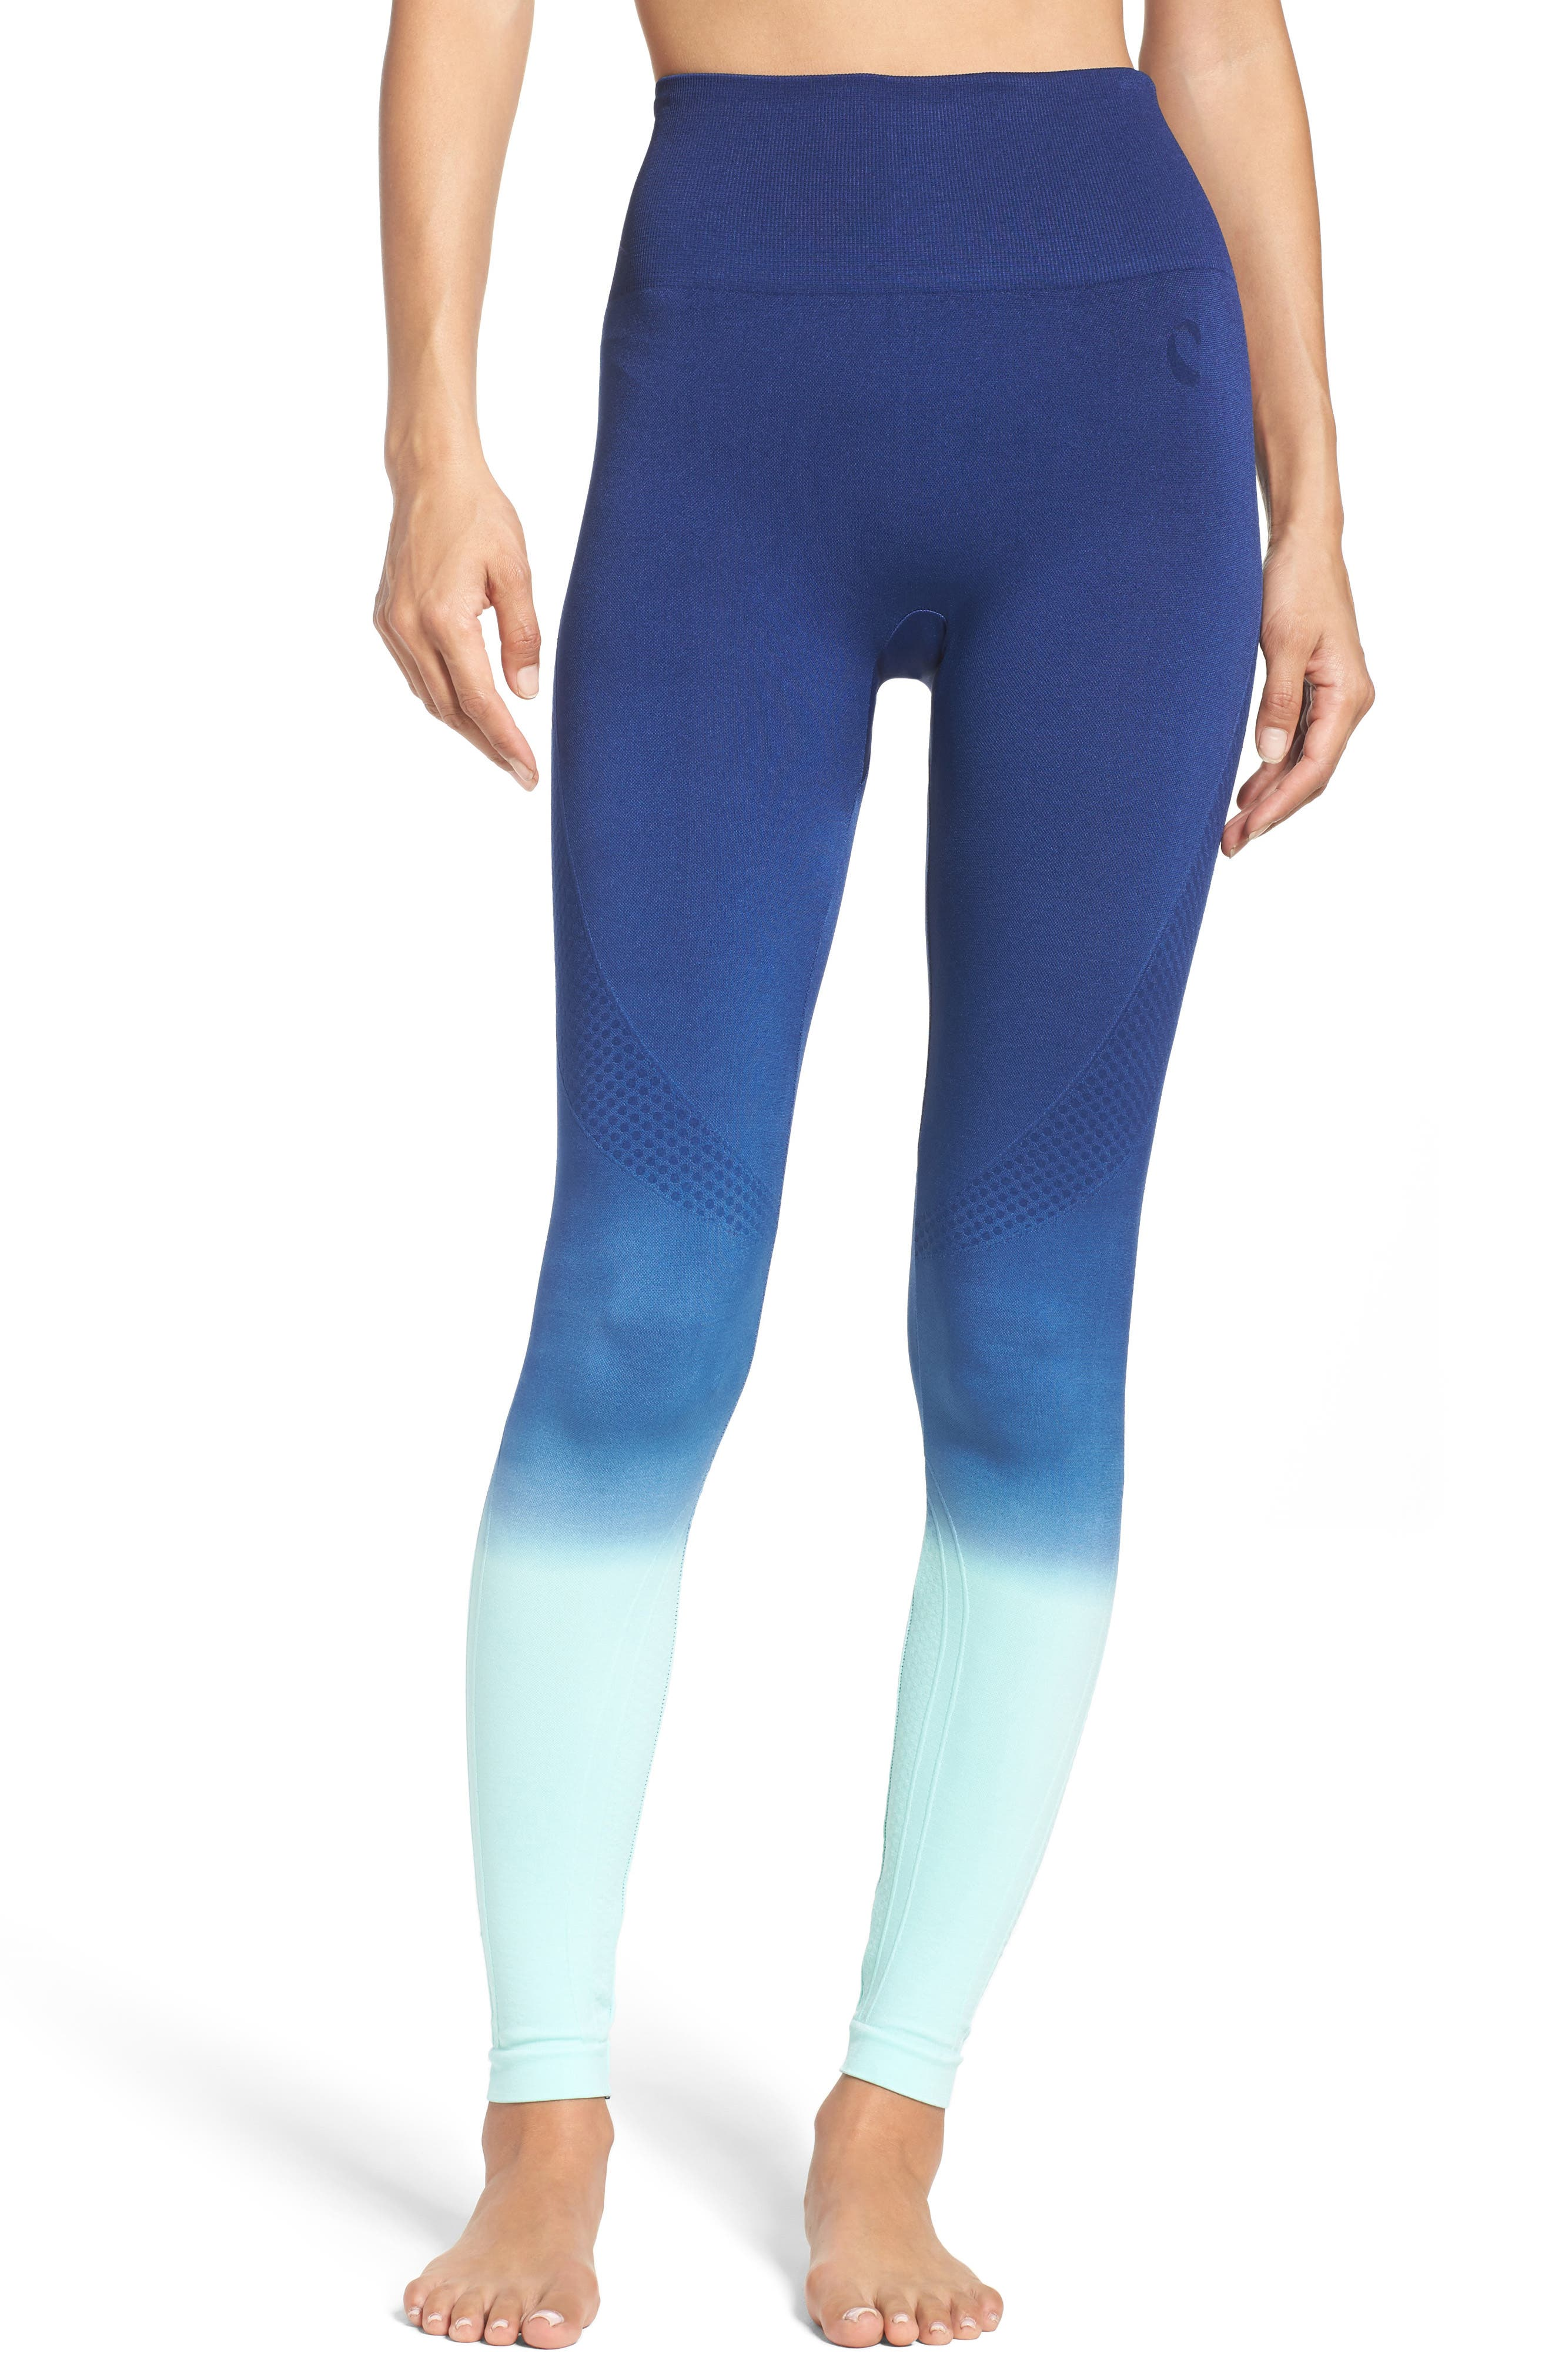 Alternate Image 1 Selected - Climawear Set the Pace High Waist Leggings